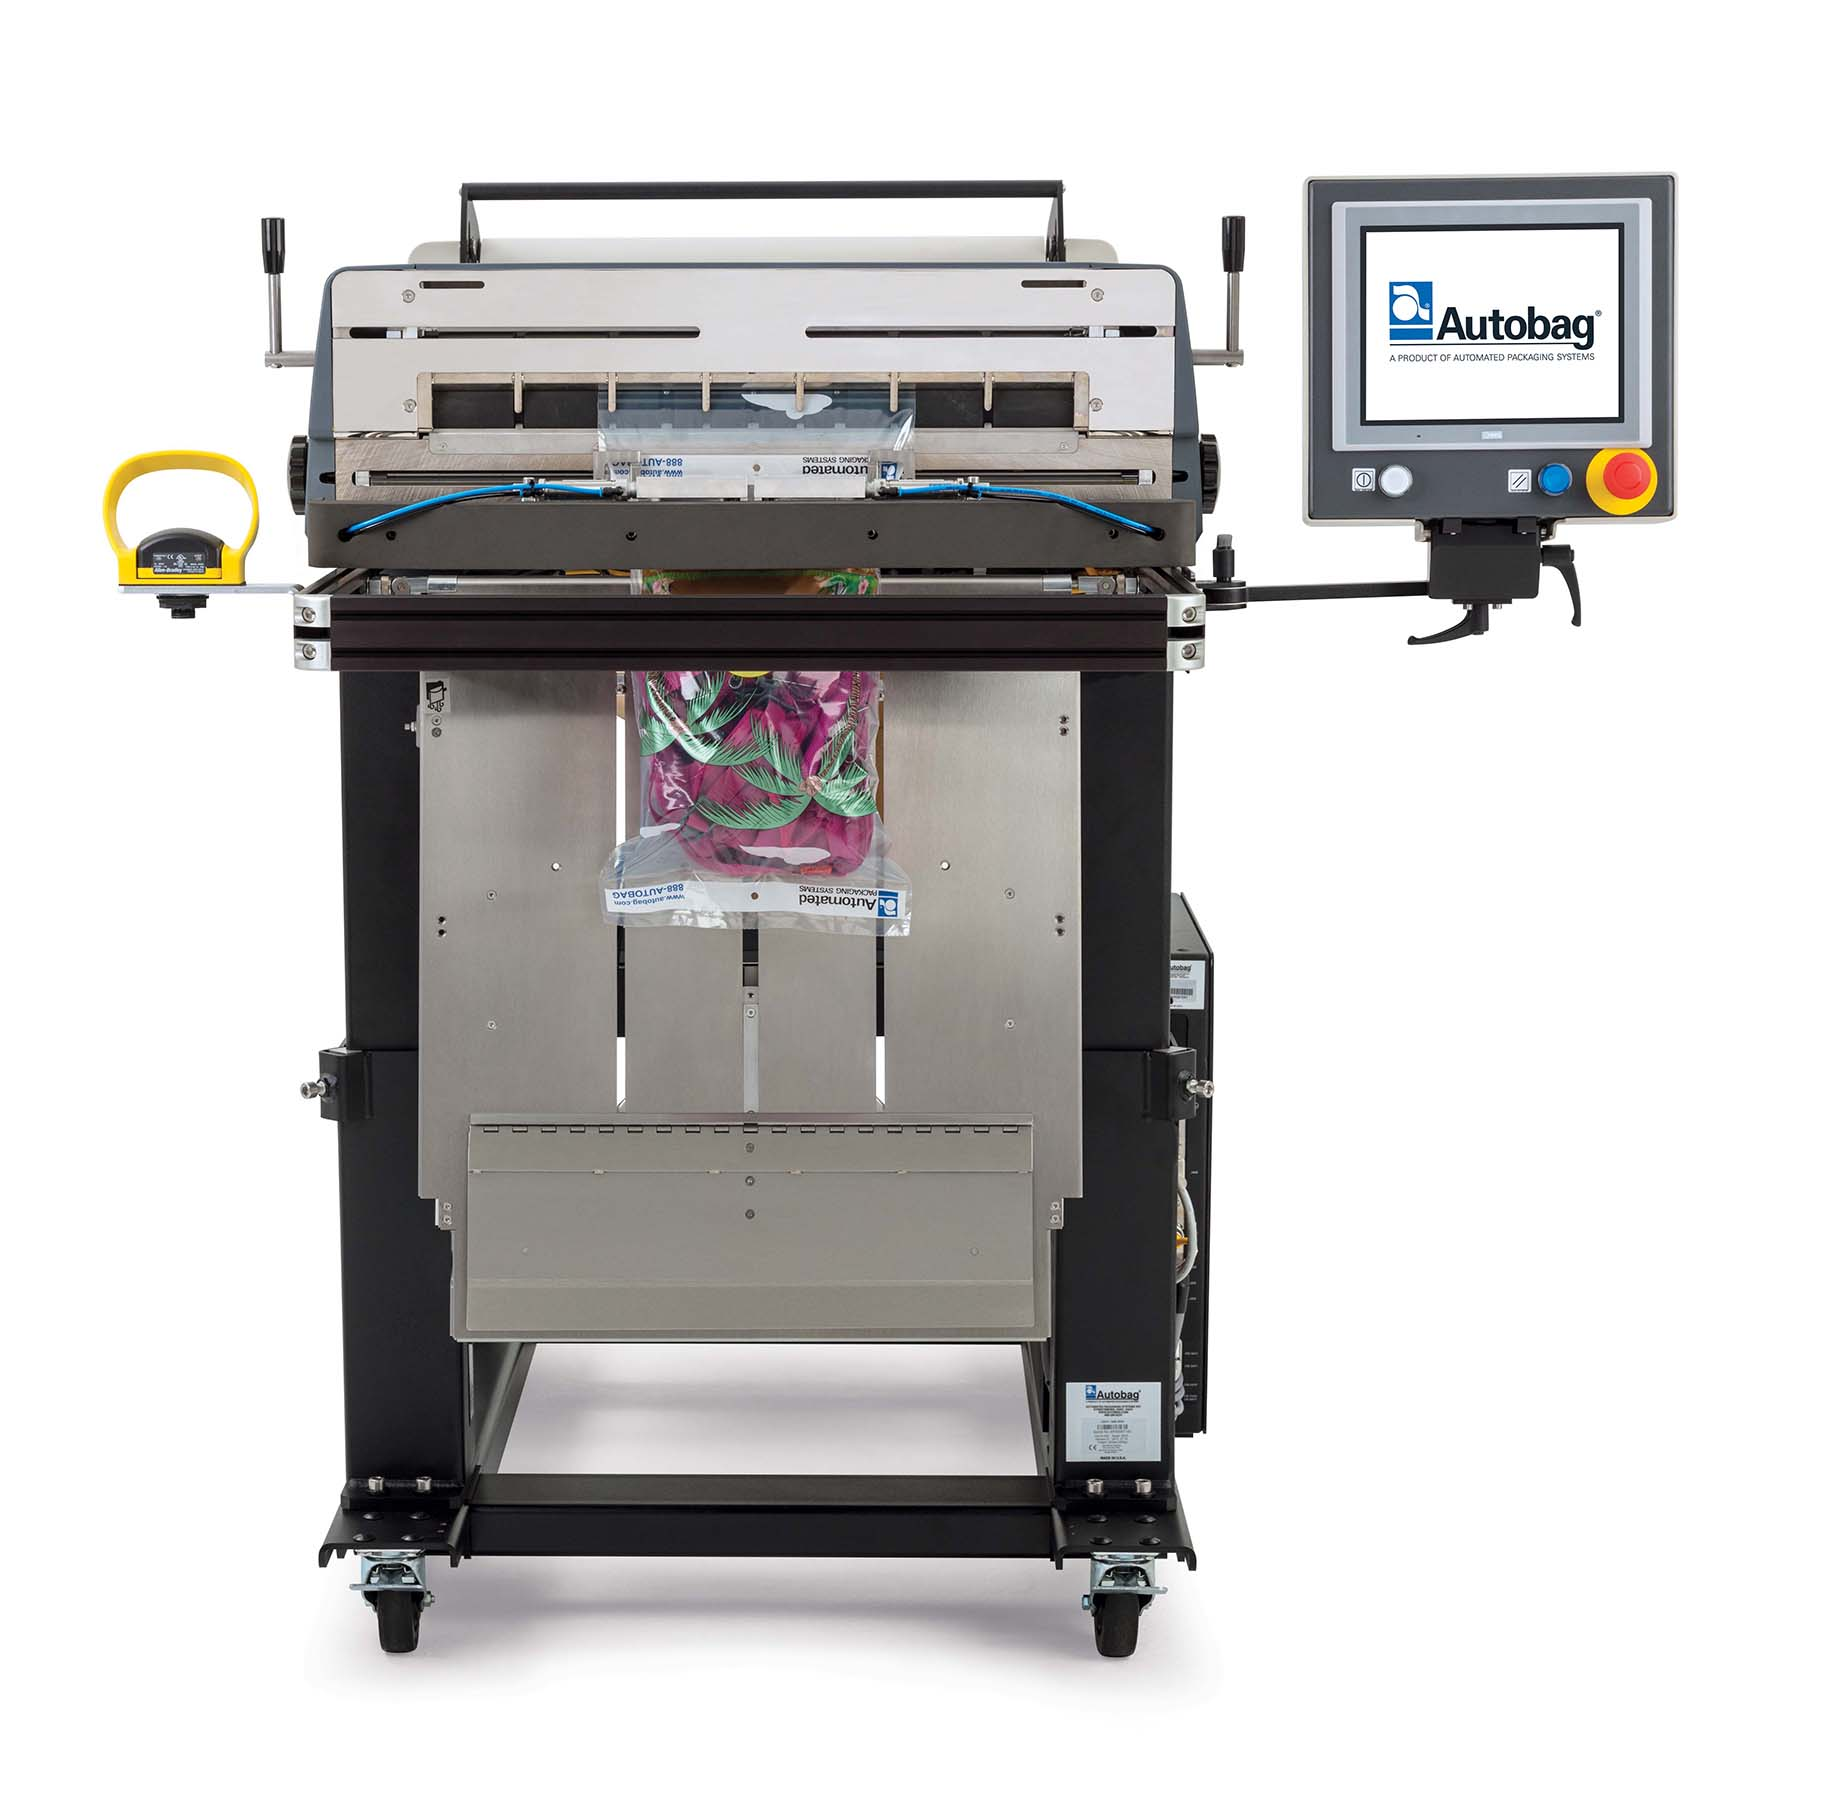 Autobag 800S automatic bag sealer front view rags applications image 2